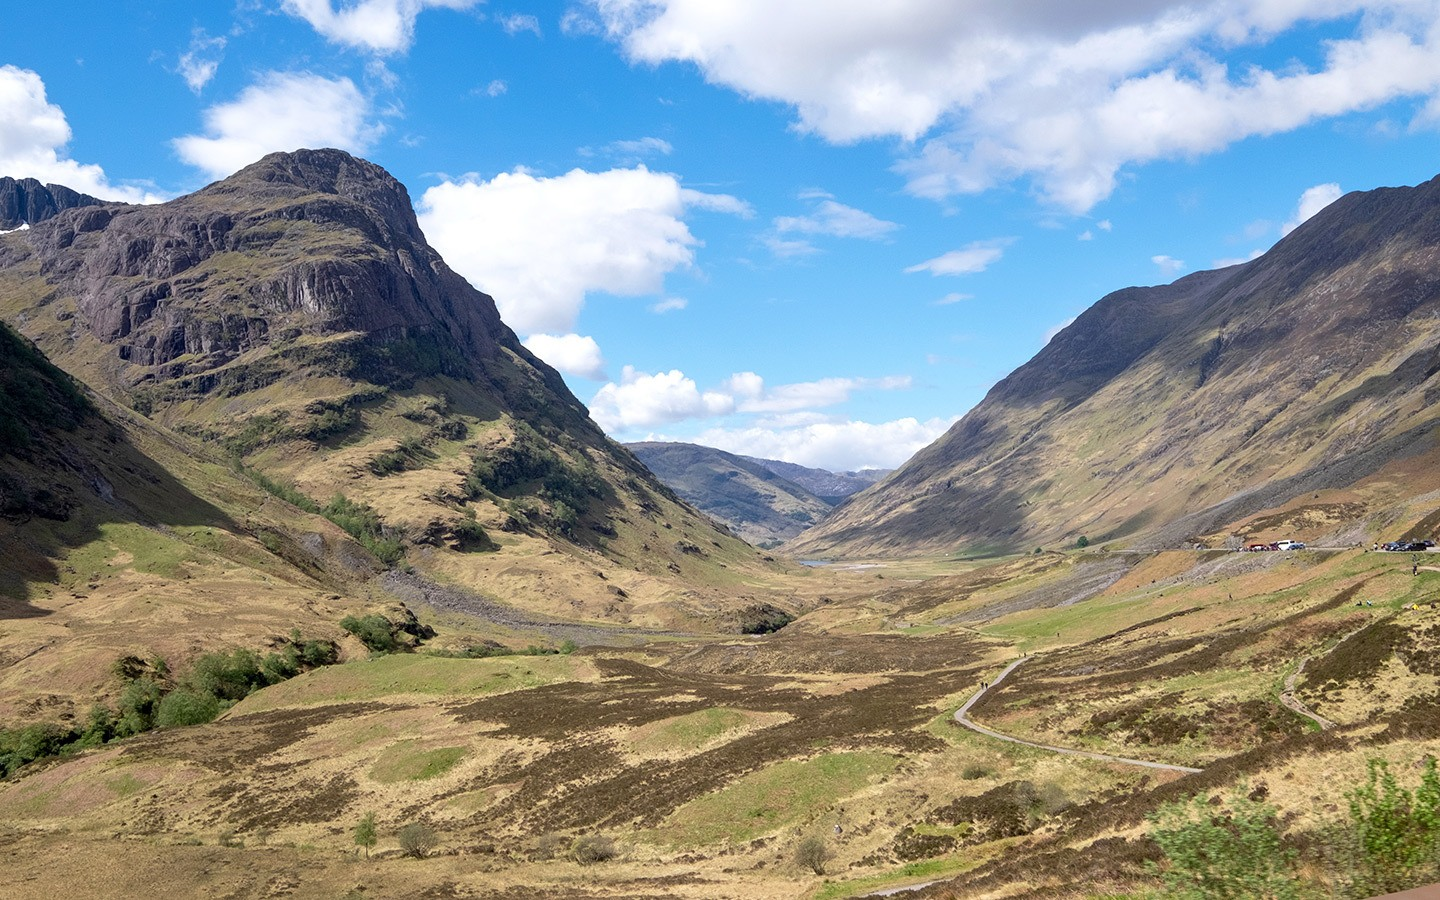 Driving through mountains at Glencoe in Scotlands